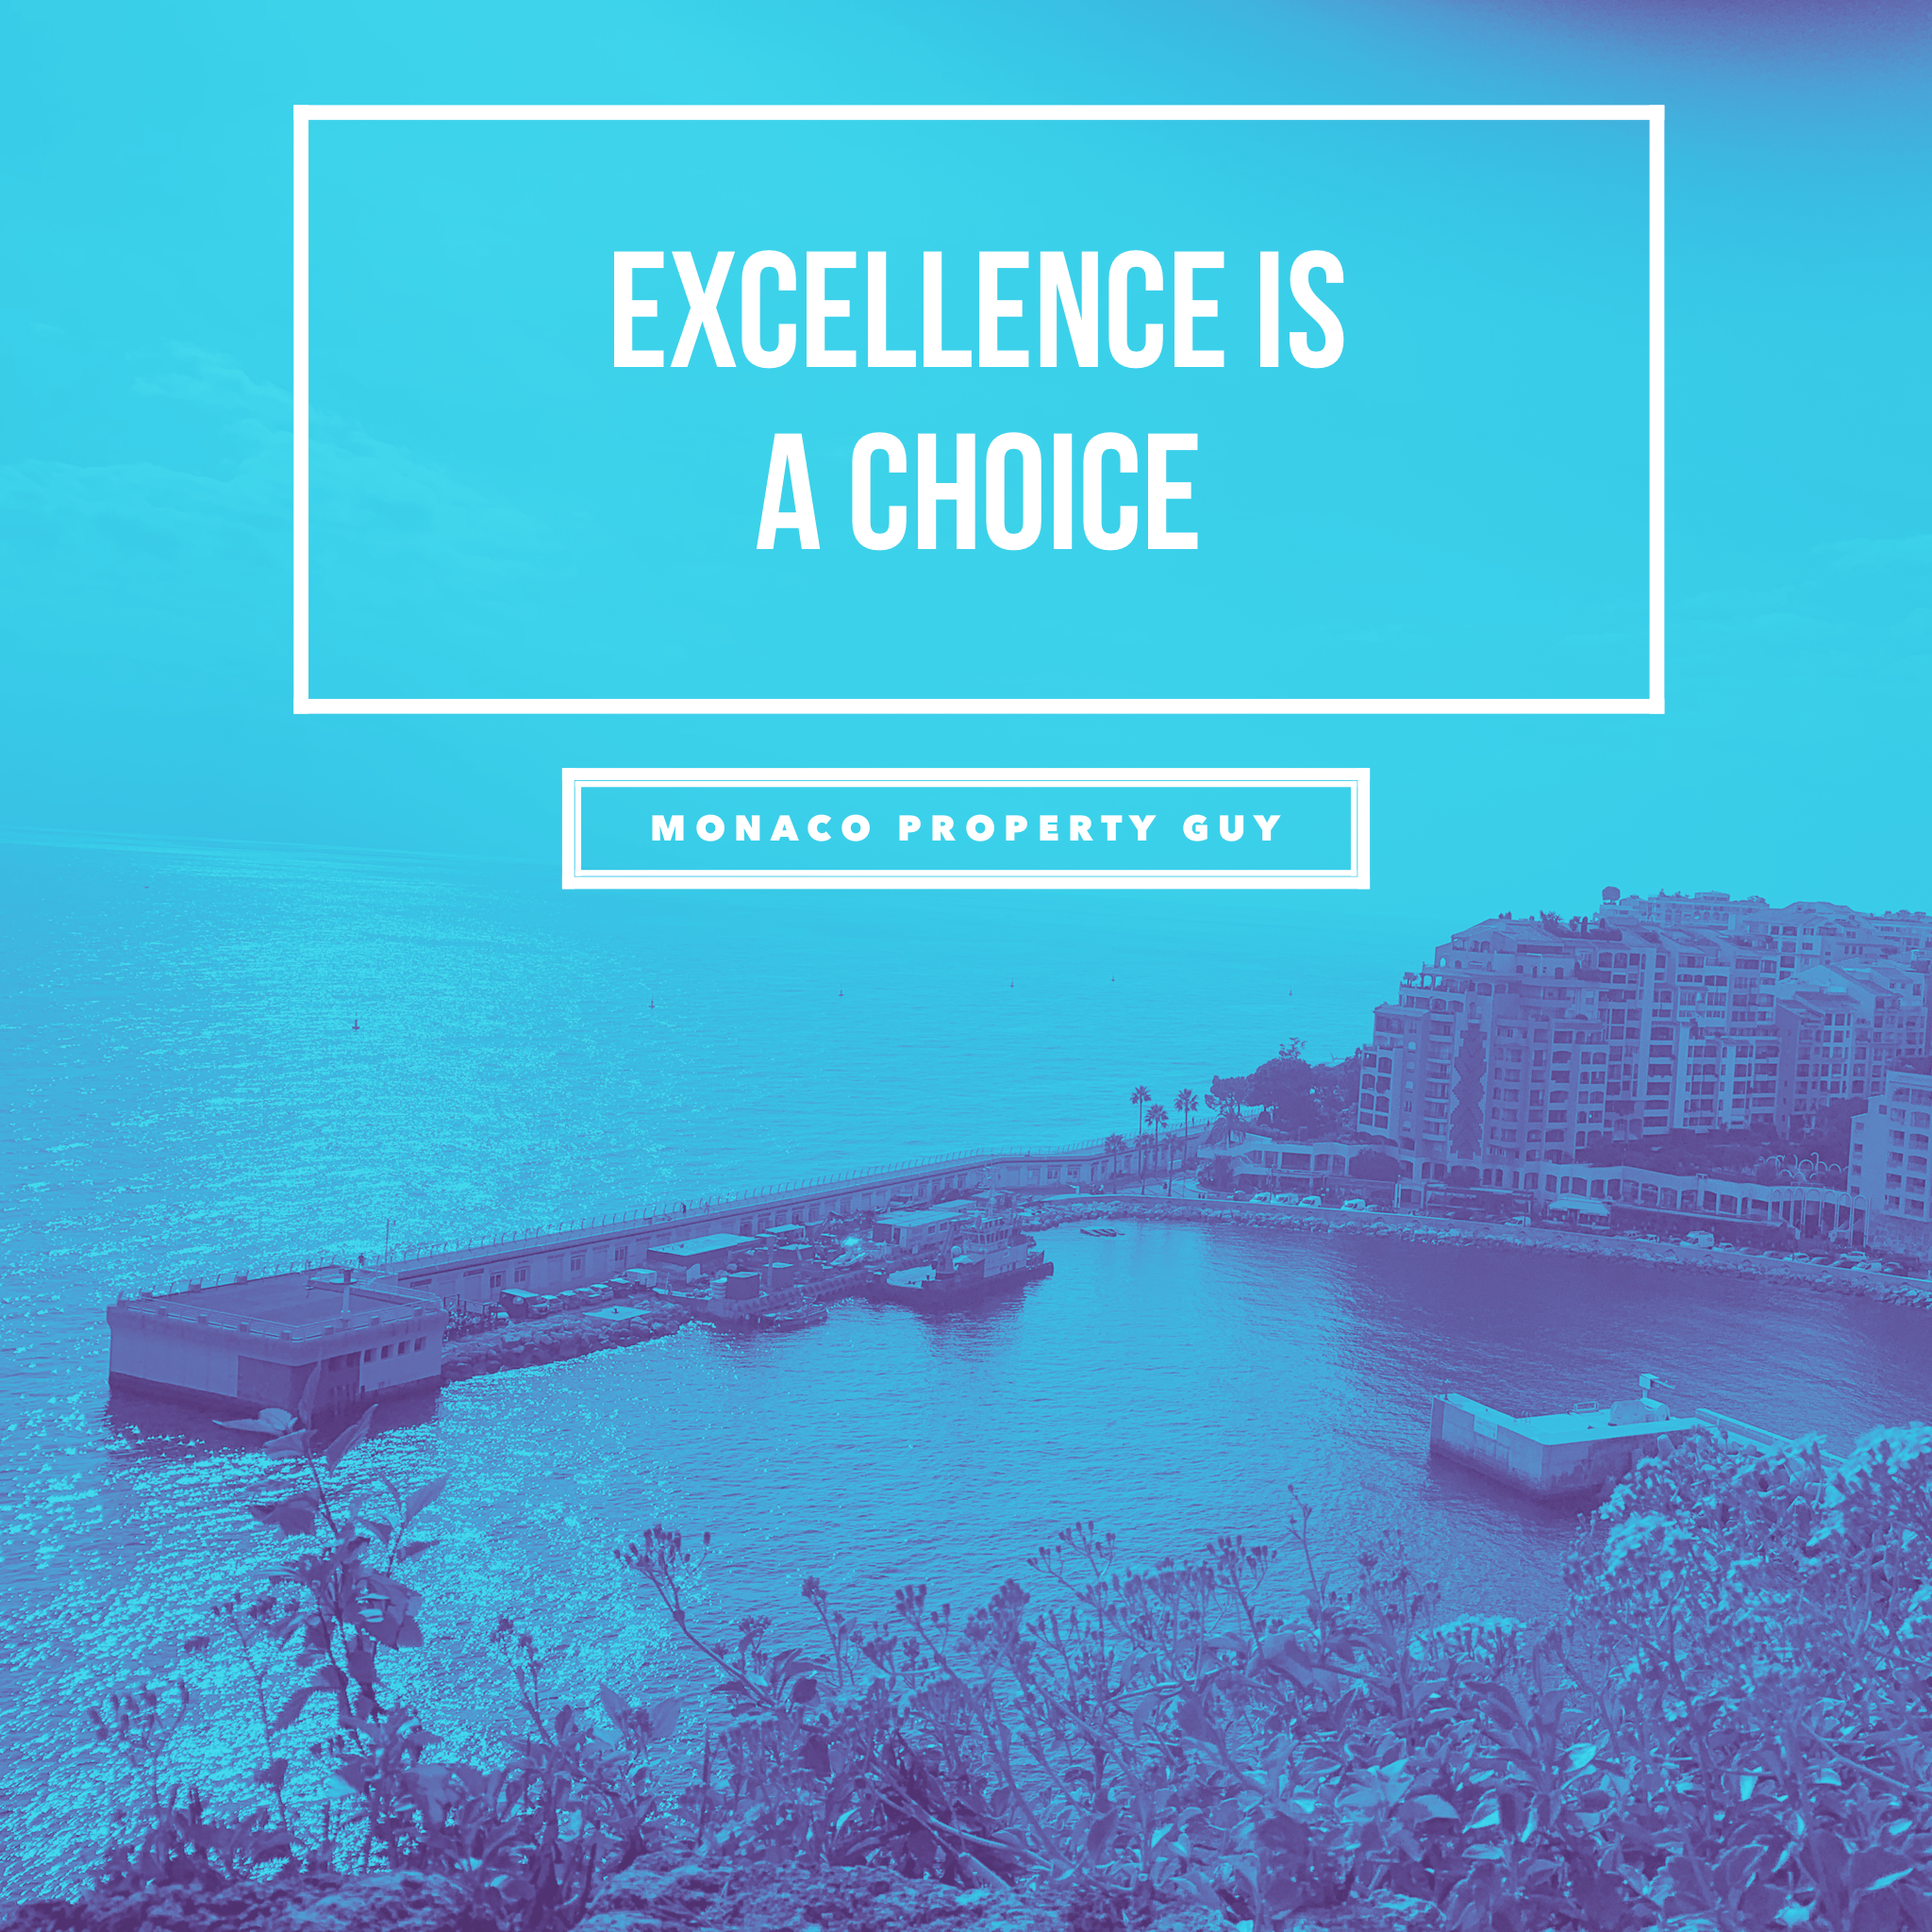 is a choice   realestate quoteoftheday  realestate quoteoftheday